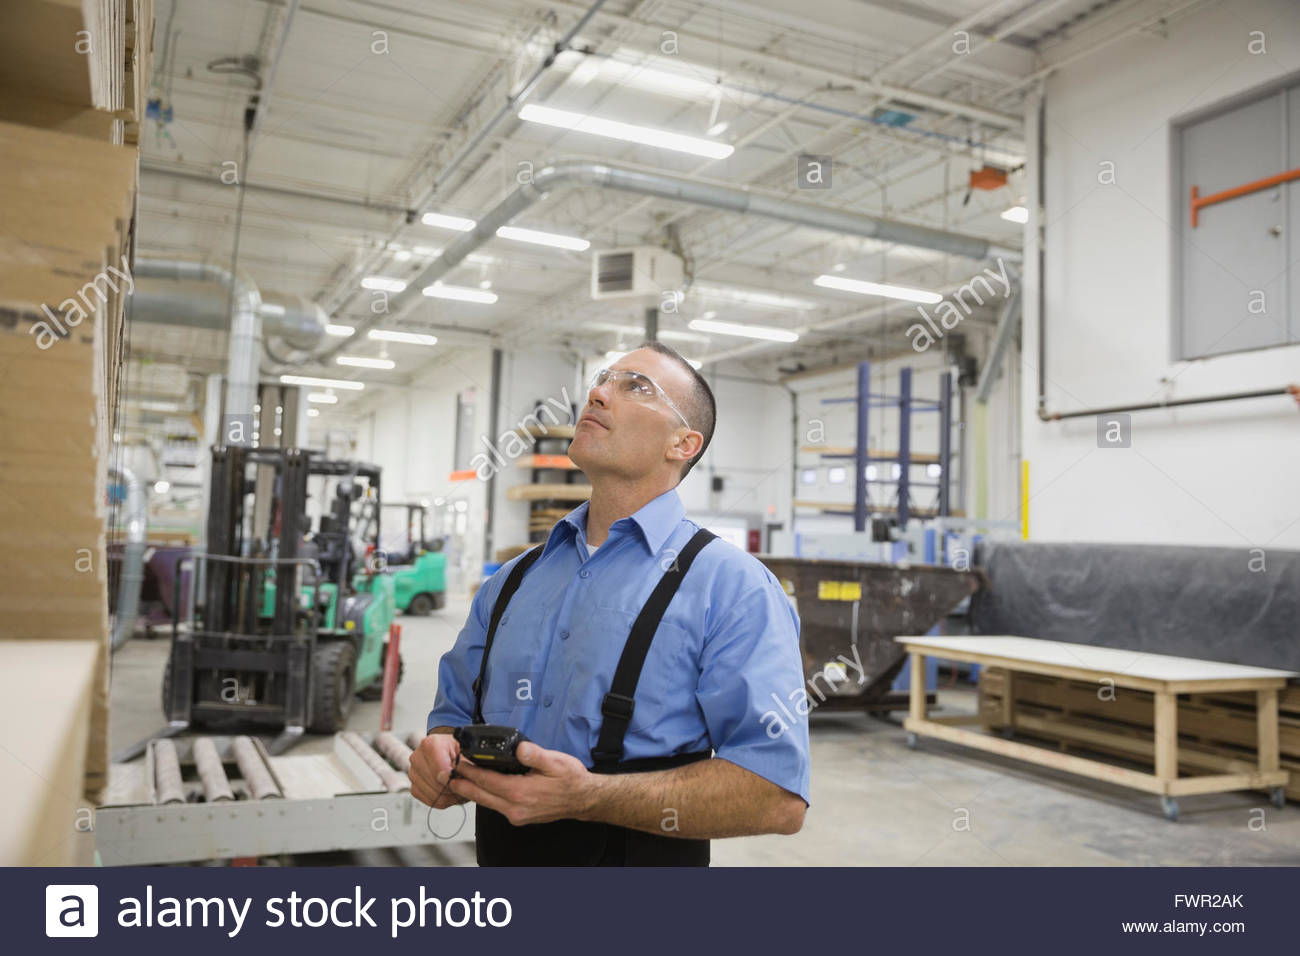 Worker with bar code reader working in warehouse - Stock Image